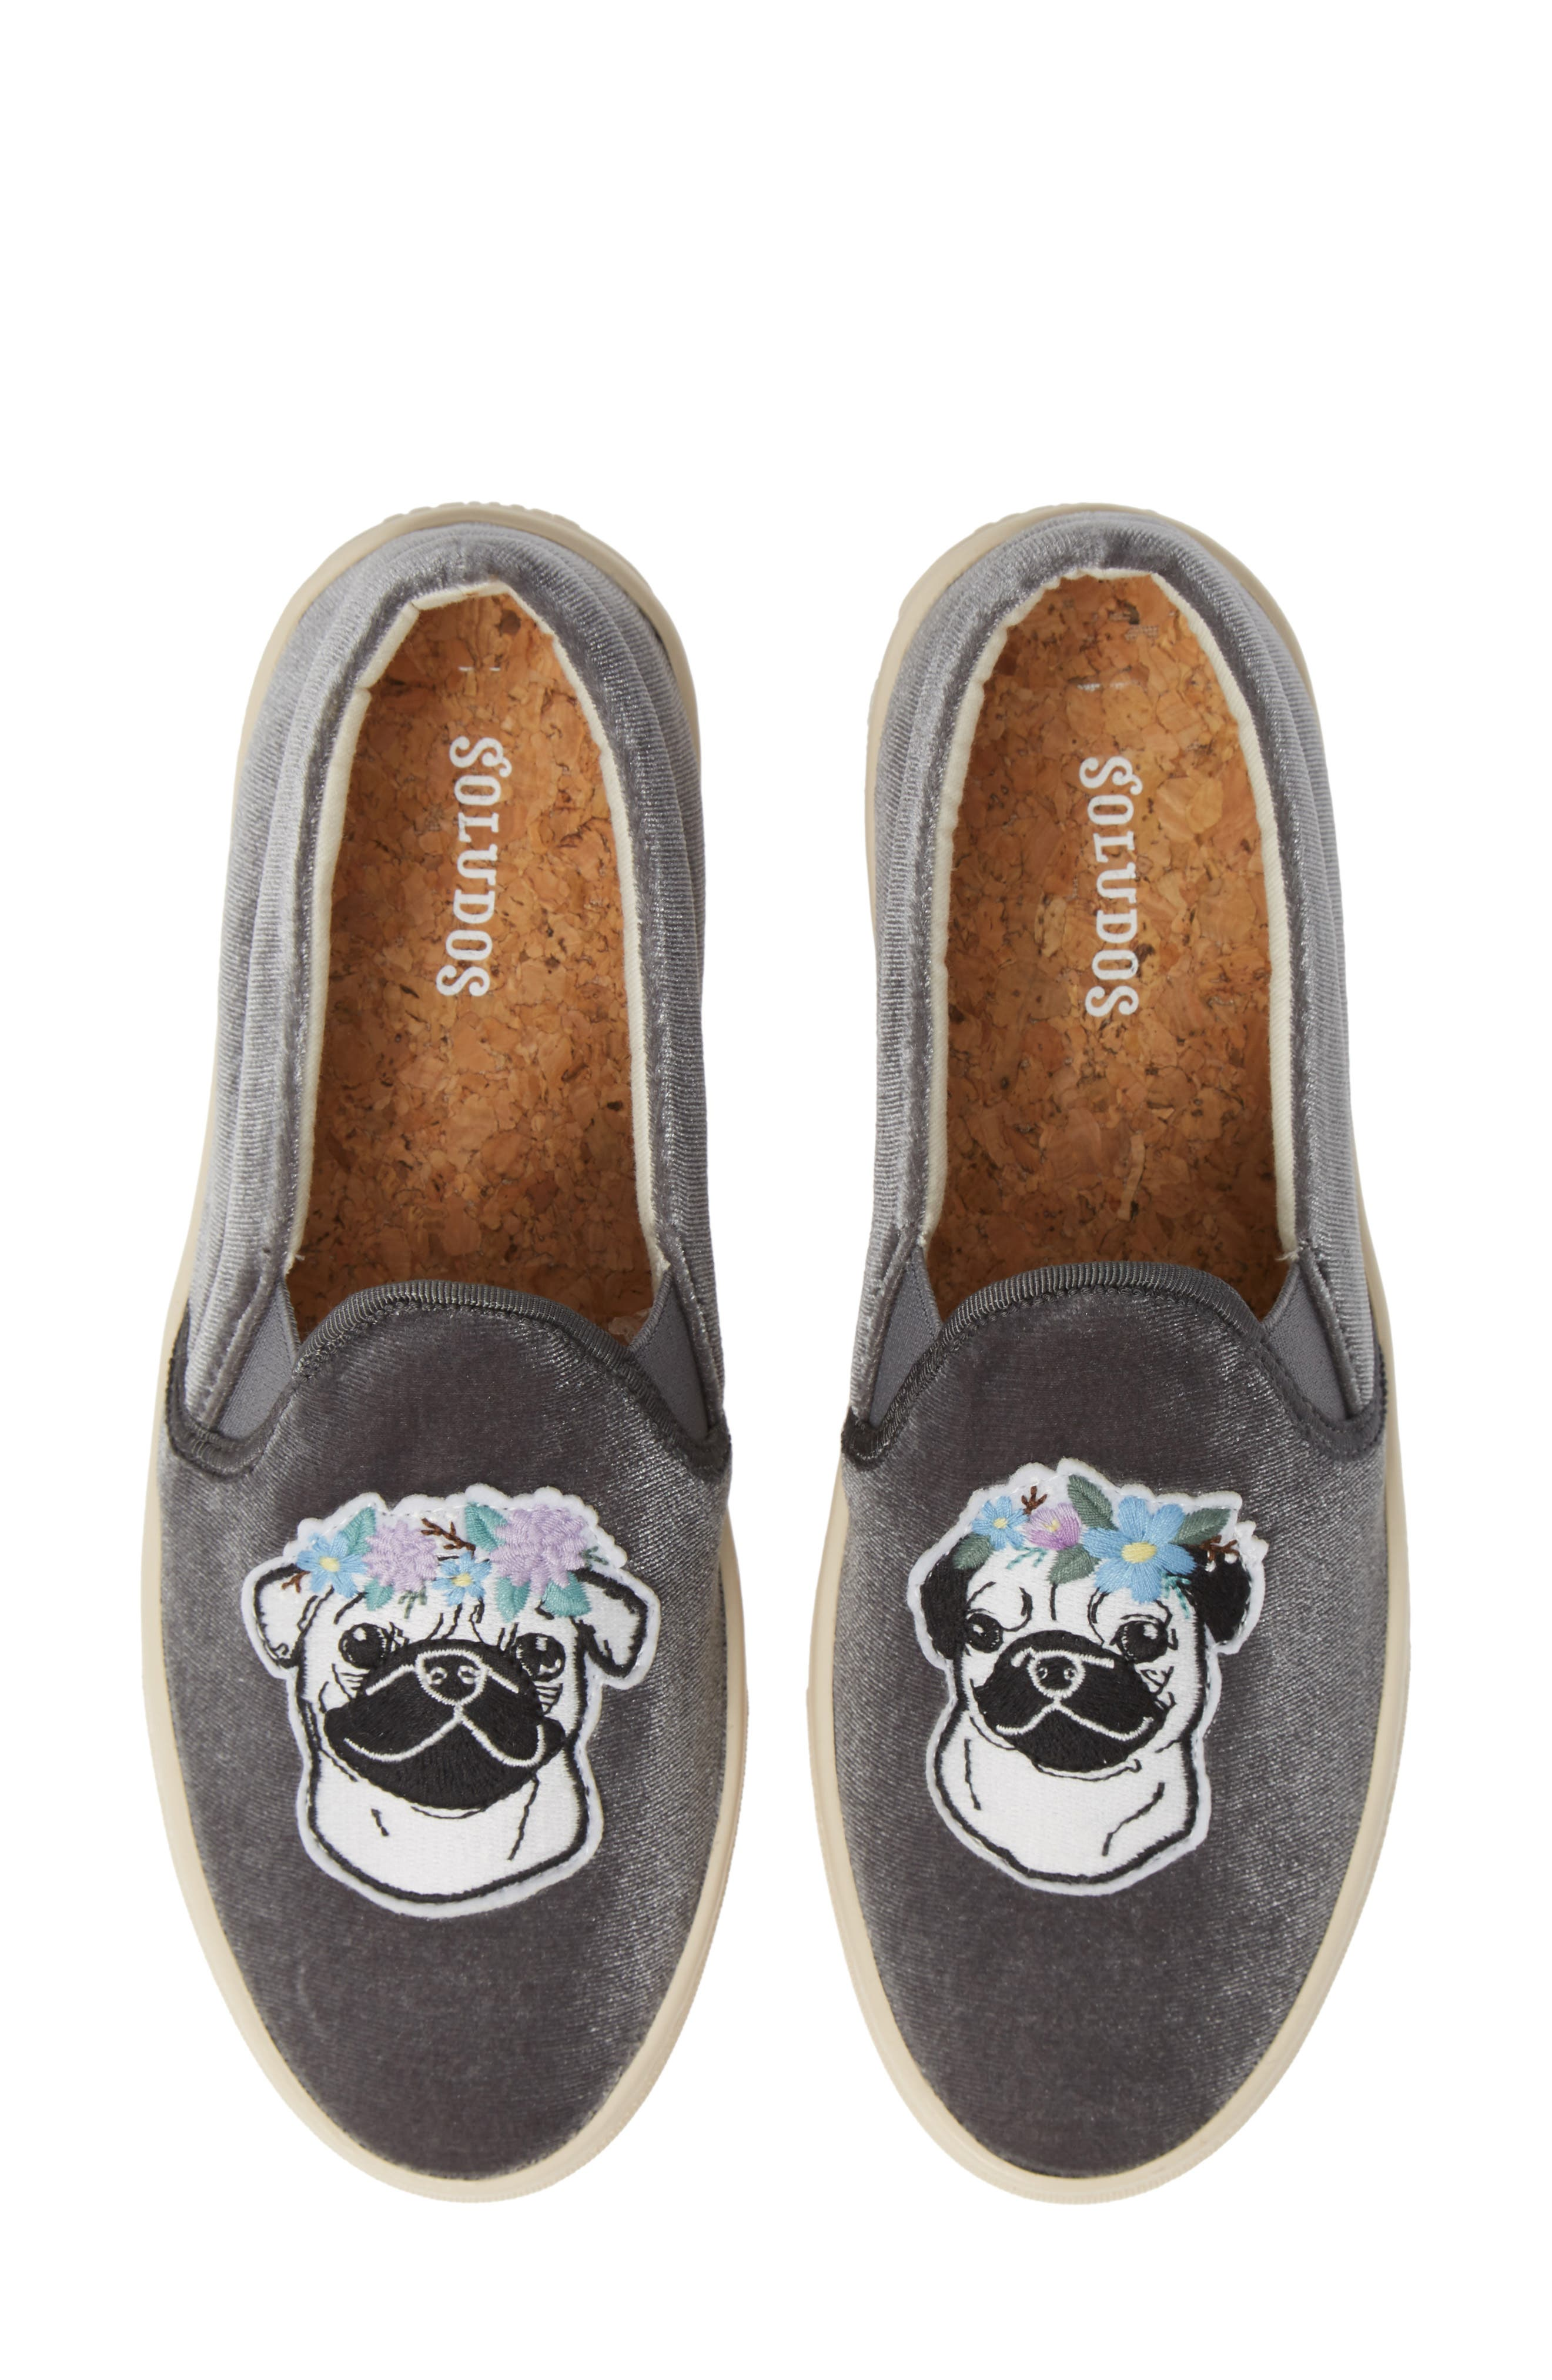 Flower Pug Applique Slip-On Sneaker in Grey